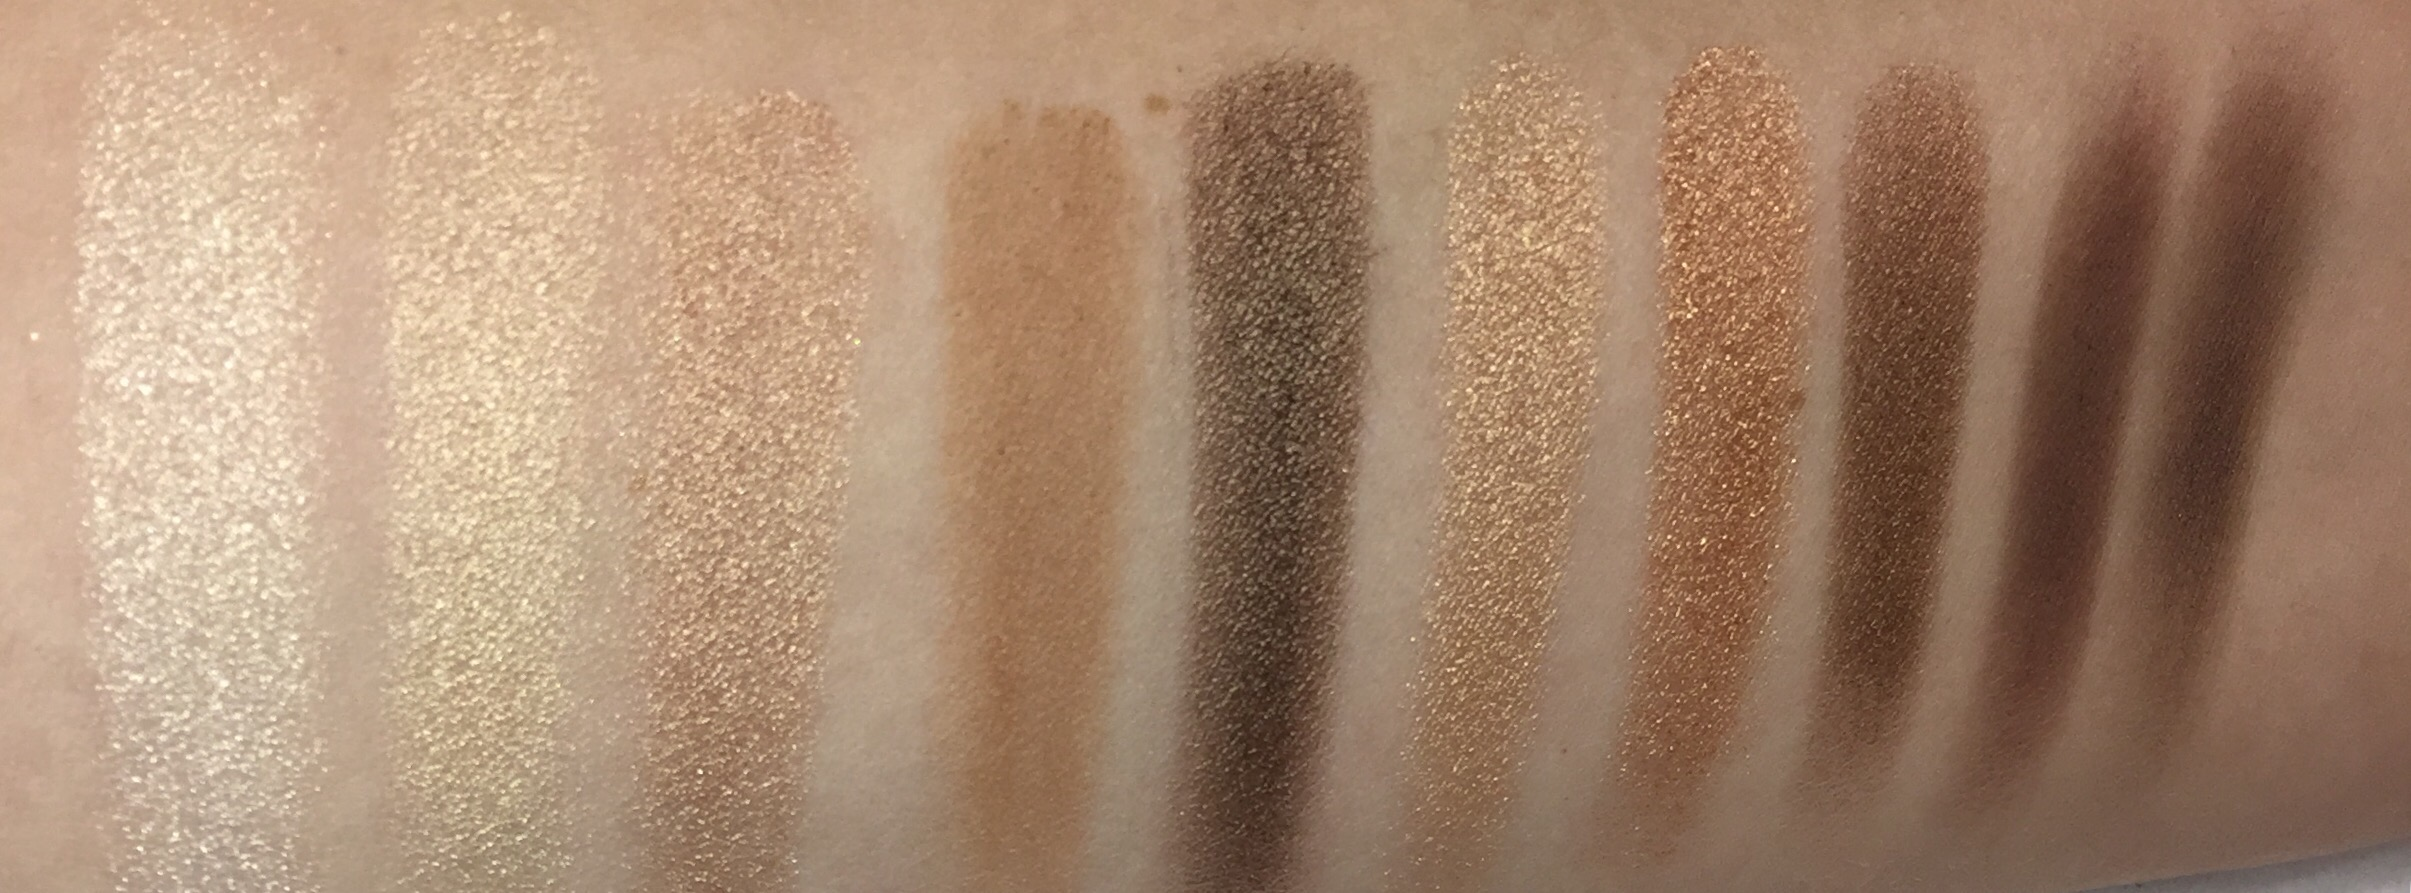 Flower cosmetics review as told by jenny 1 shimmer champagne izmirmasajfo